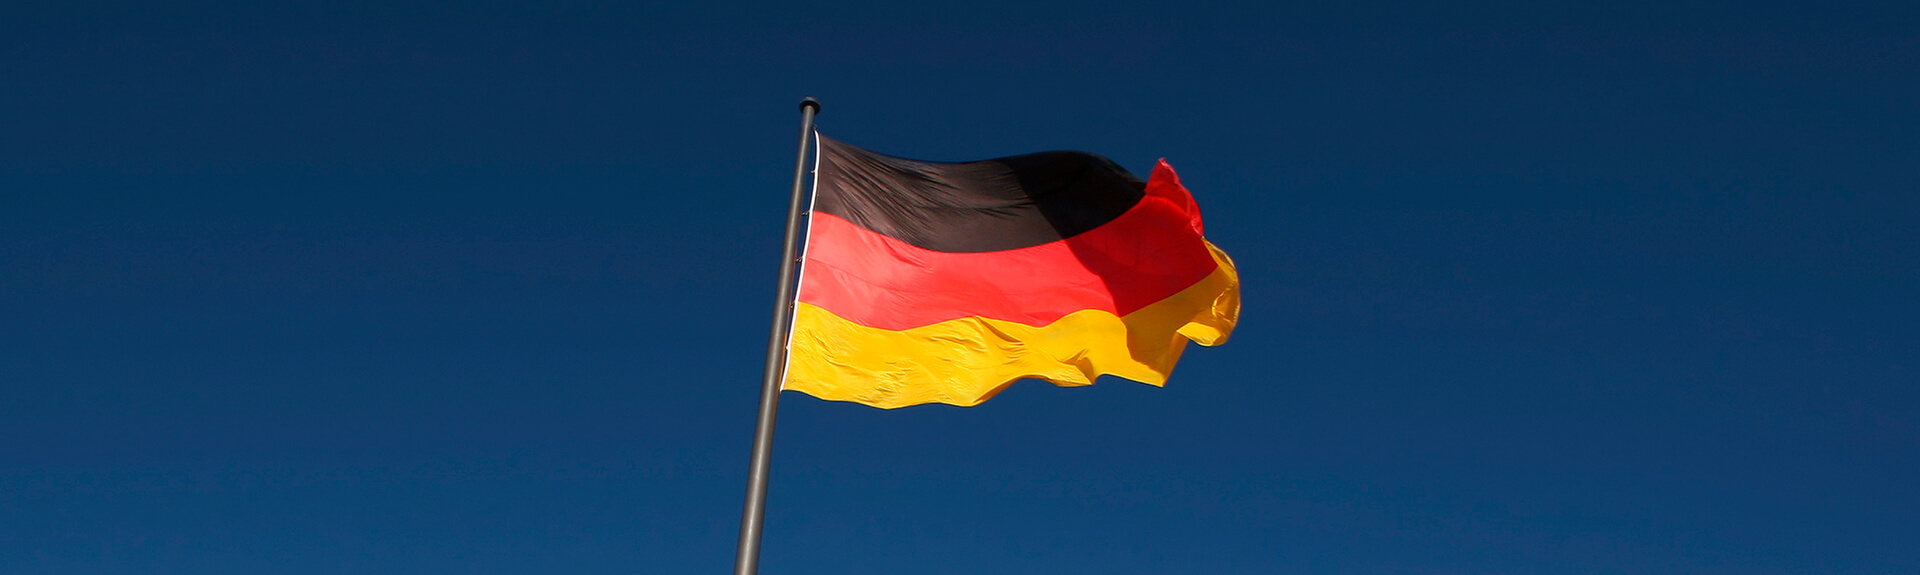 German flag on blue sky